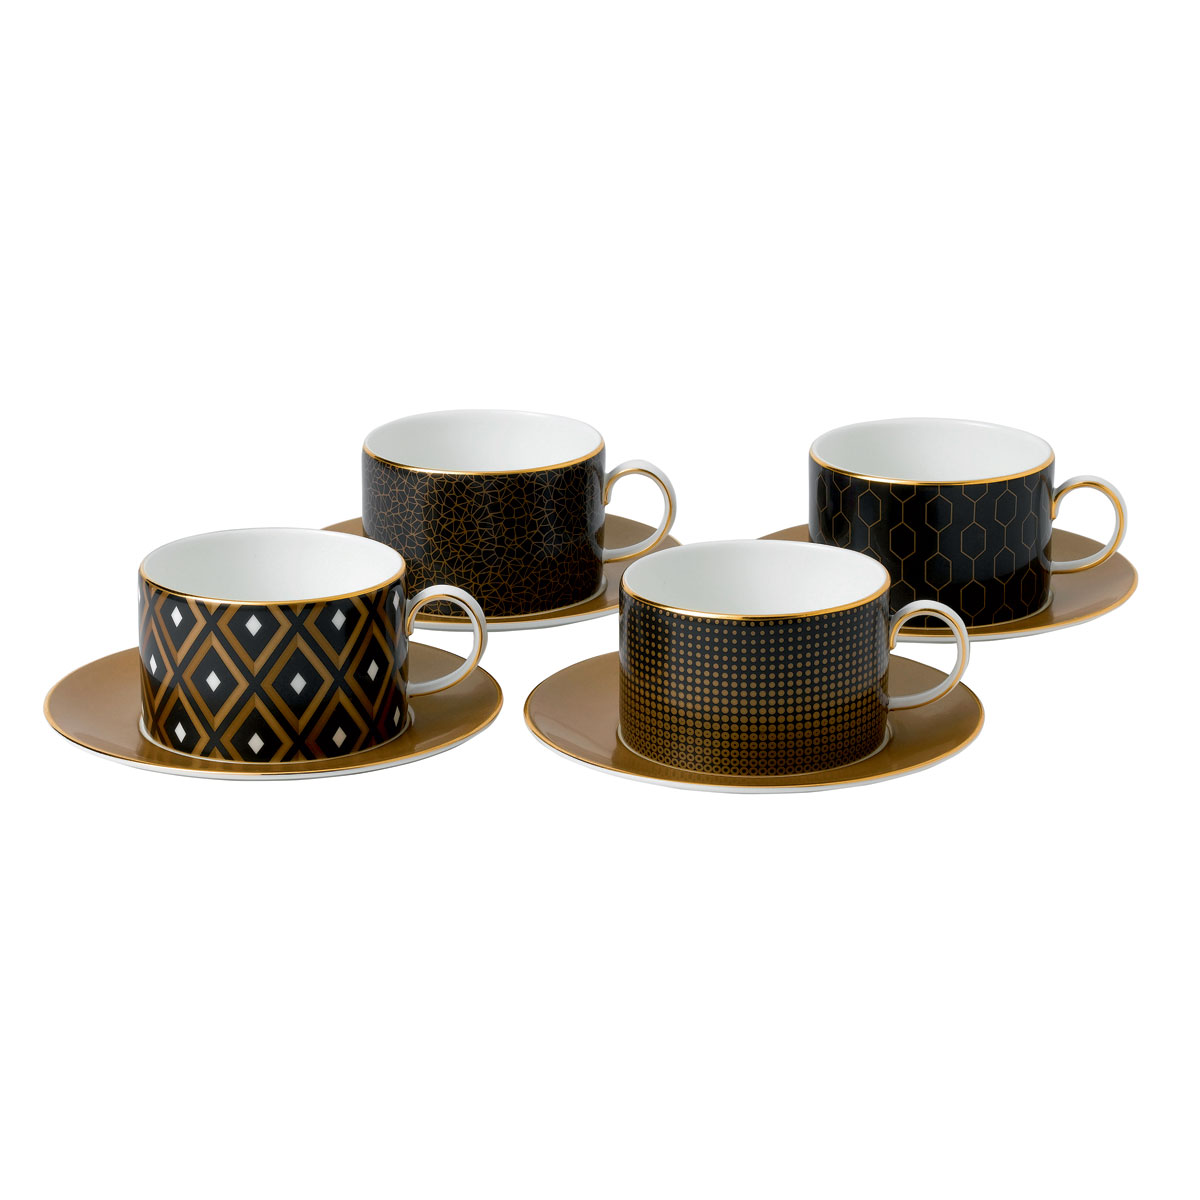 Wedgwood Arris Accent Teacup and Saucer Set of 4